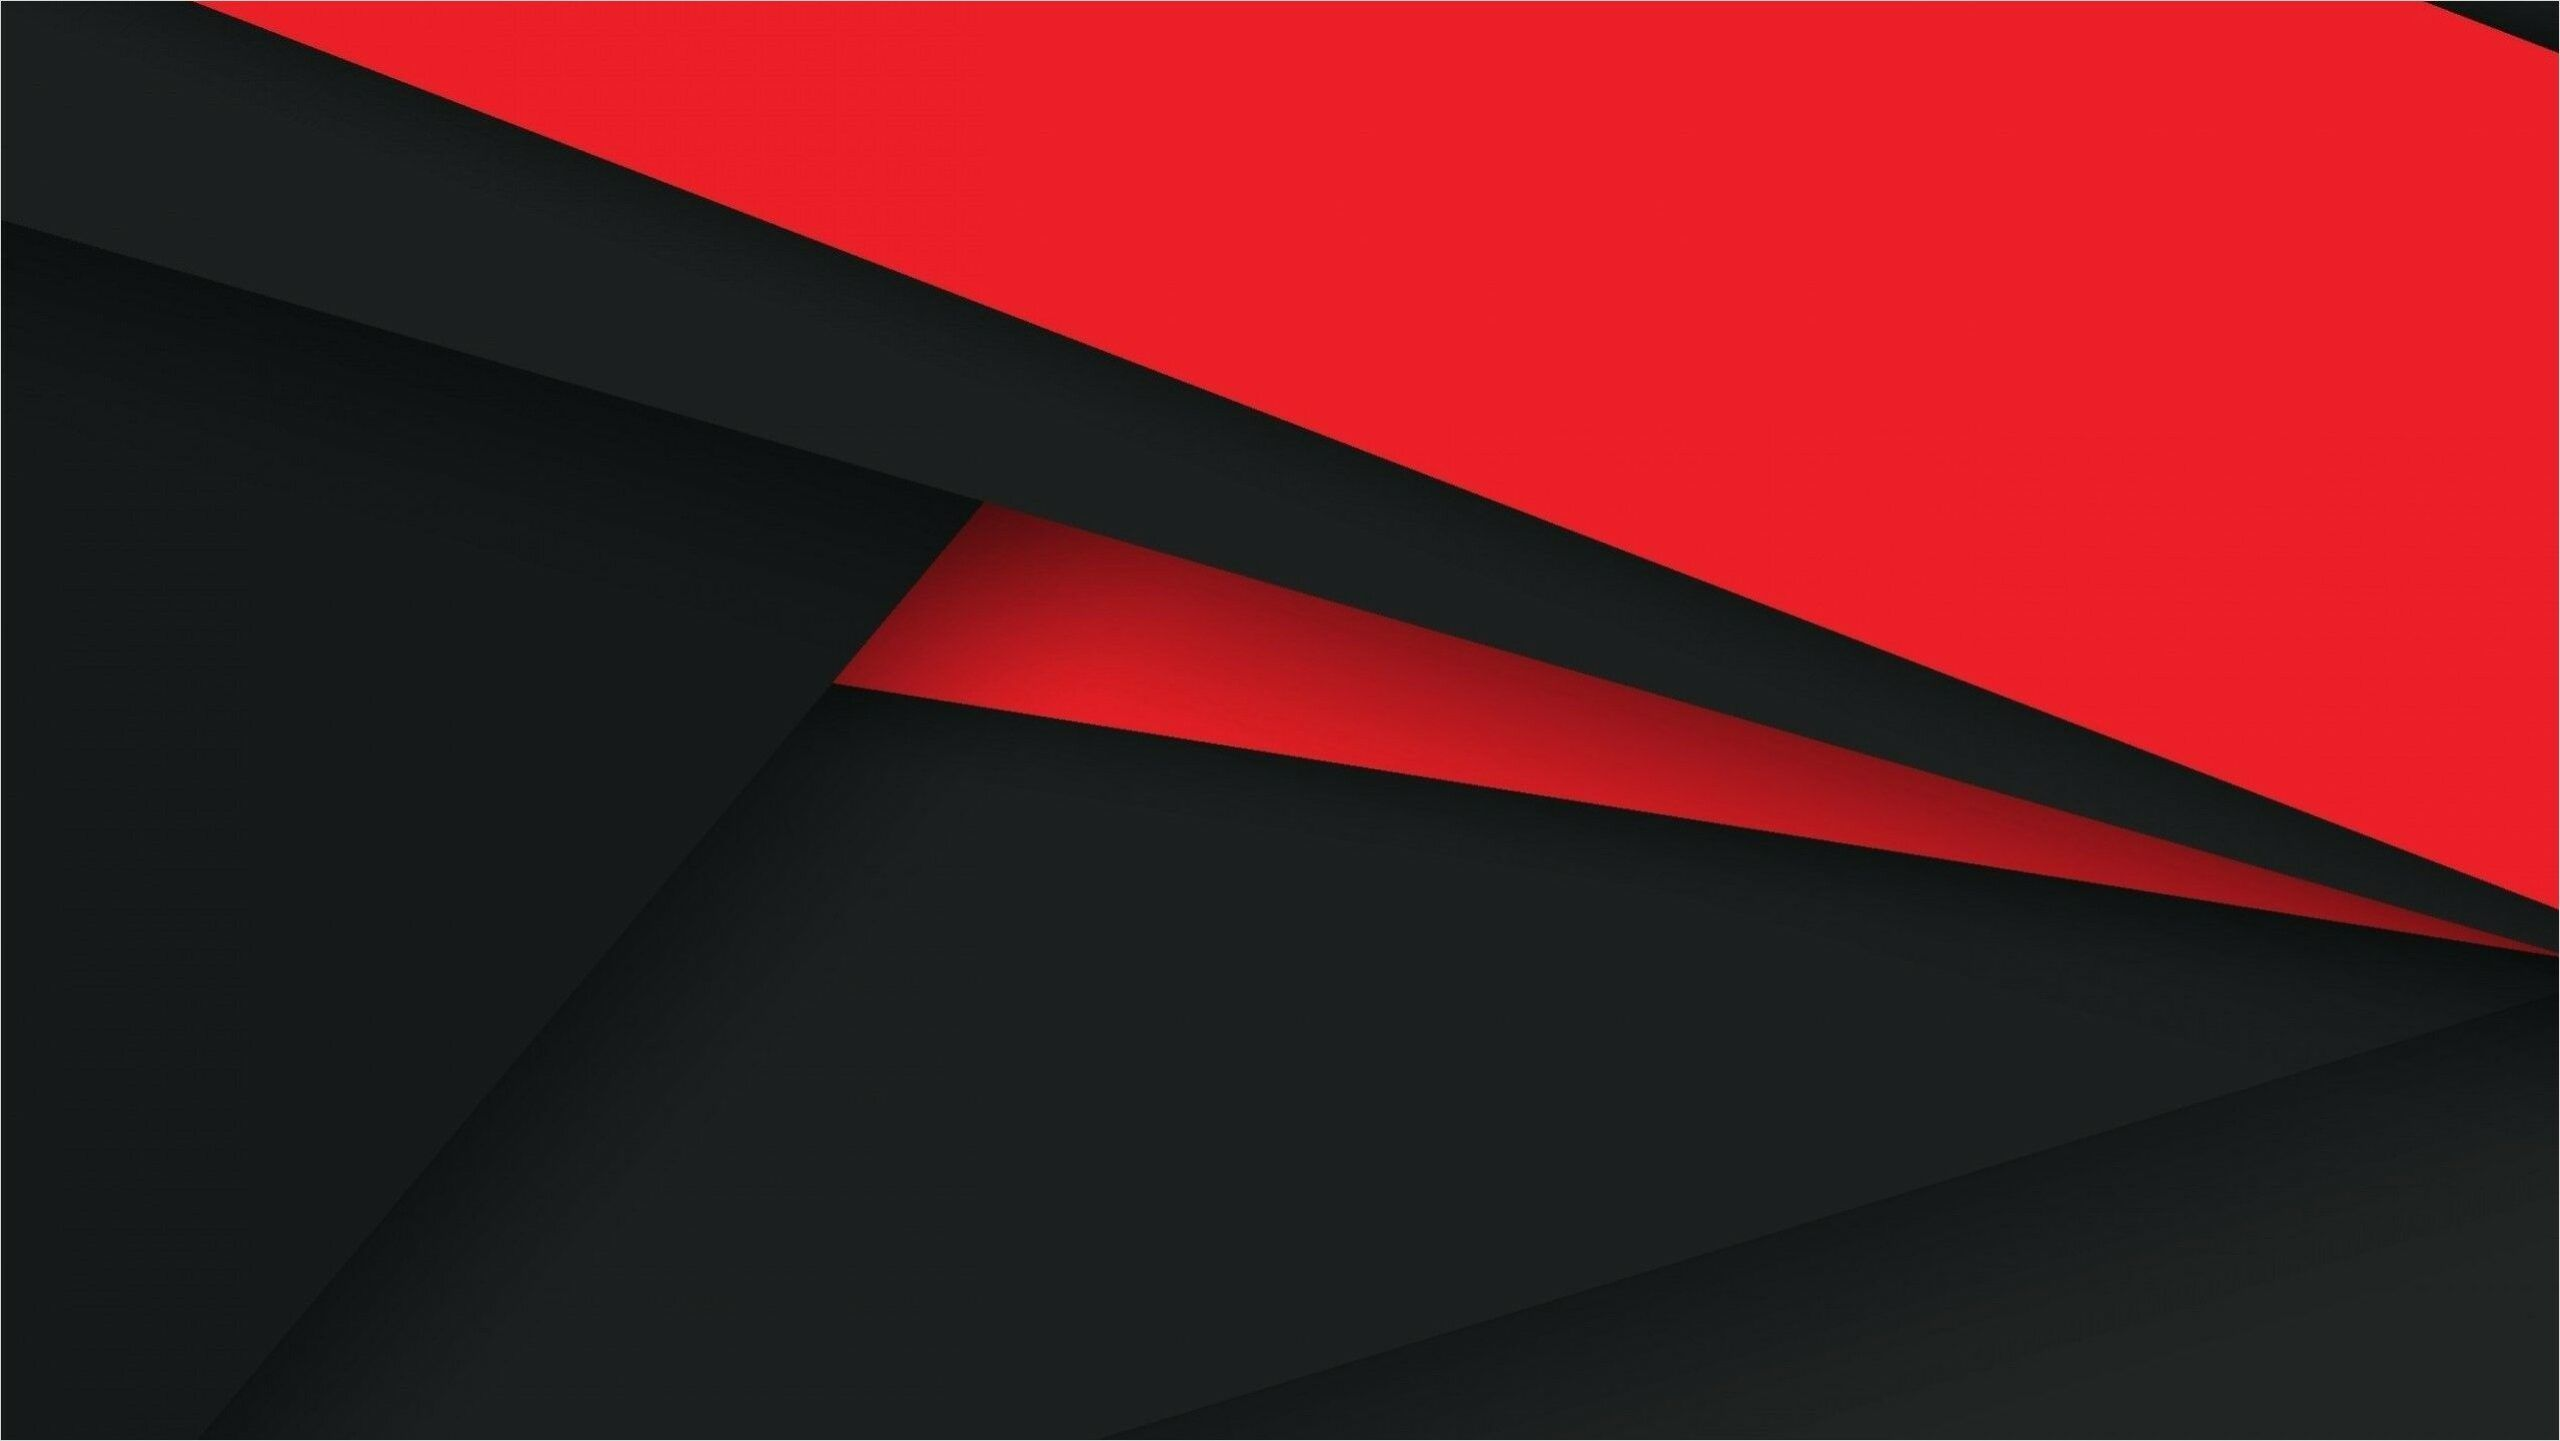 Black And Red 4k Wallpaper In 2020 Red And Black Wallpaper Red Wallpaper Black Wallpaper